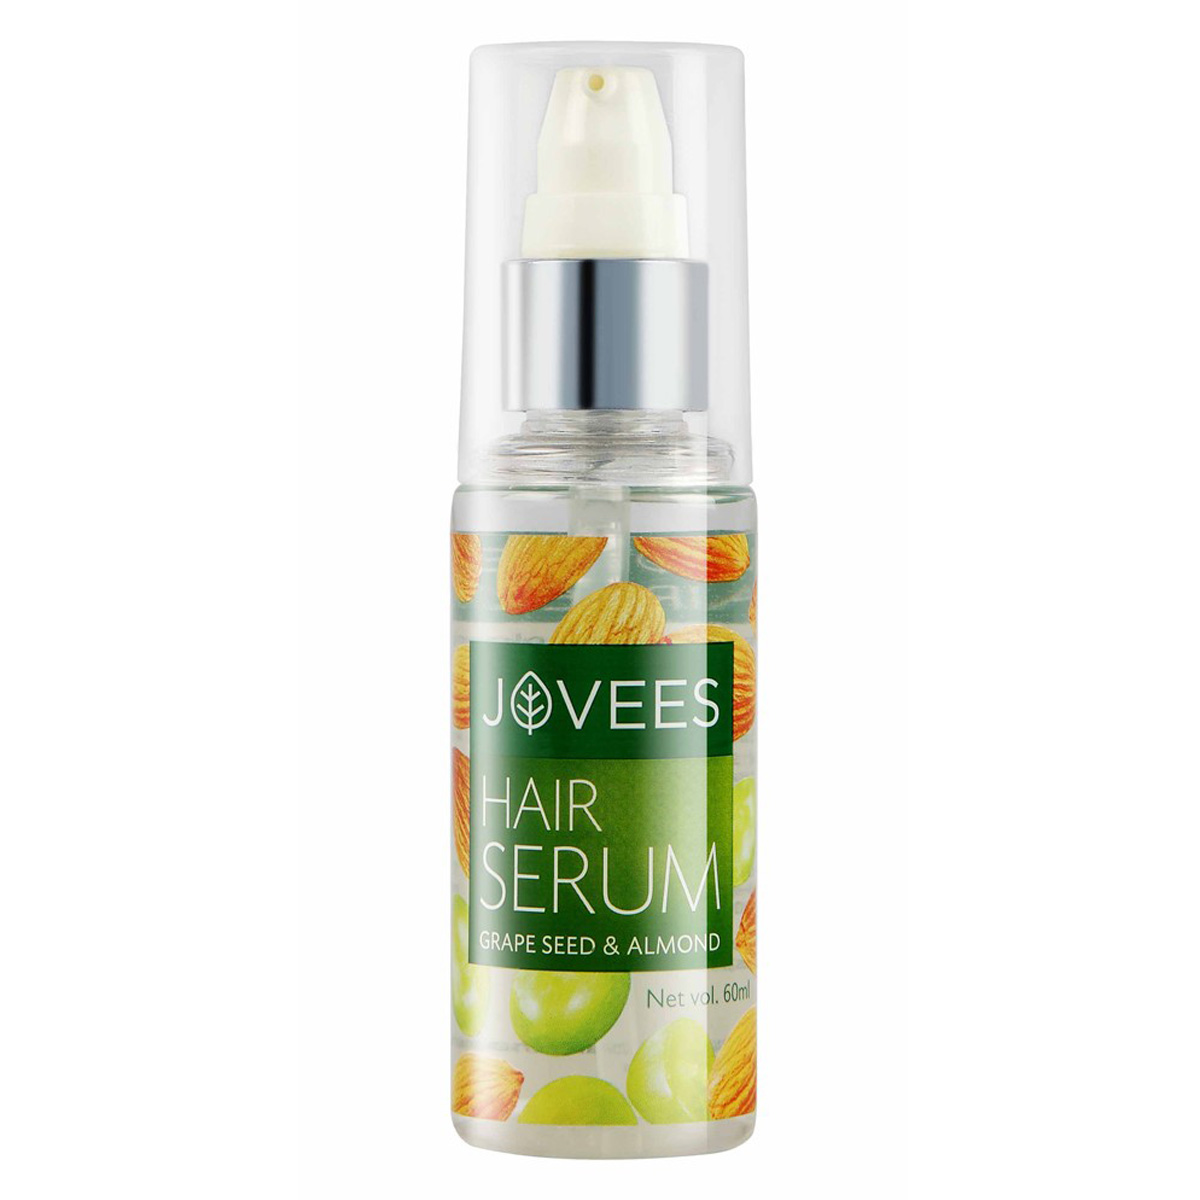 Jovees Hair Serum- Grape Seed and Almond (60ml)